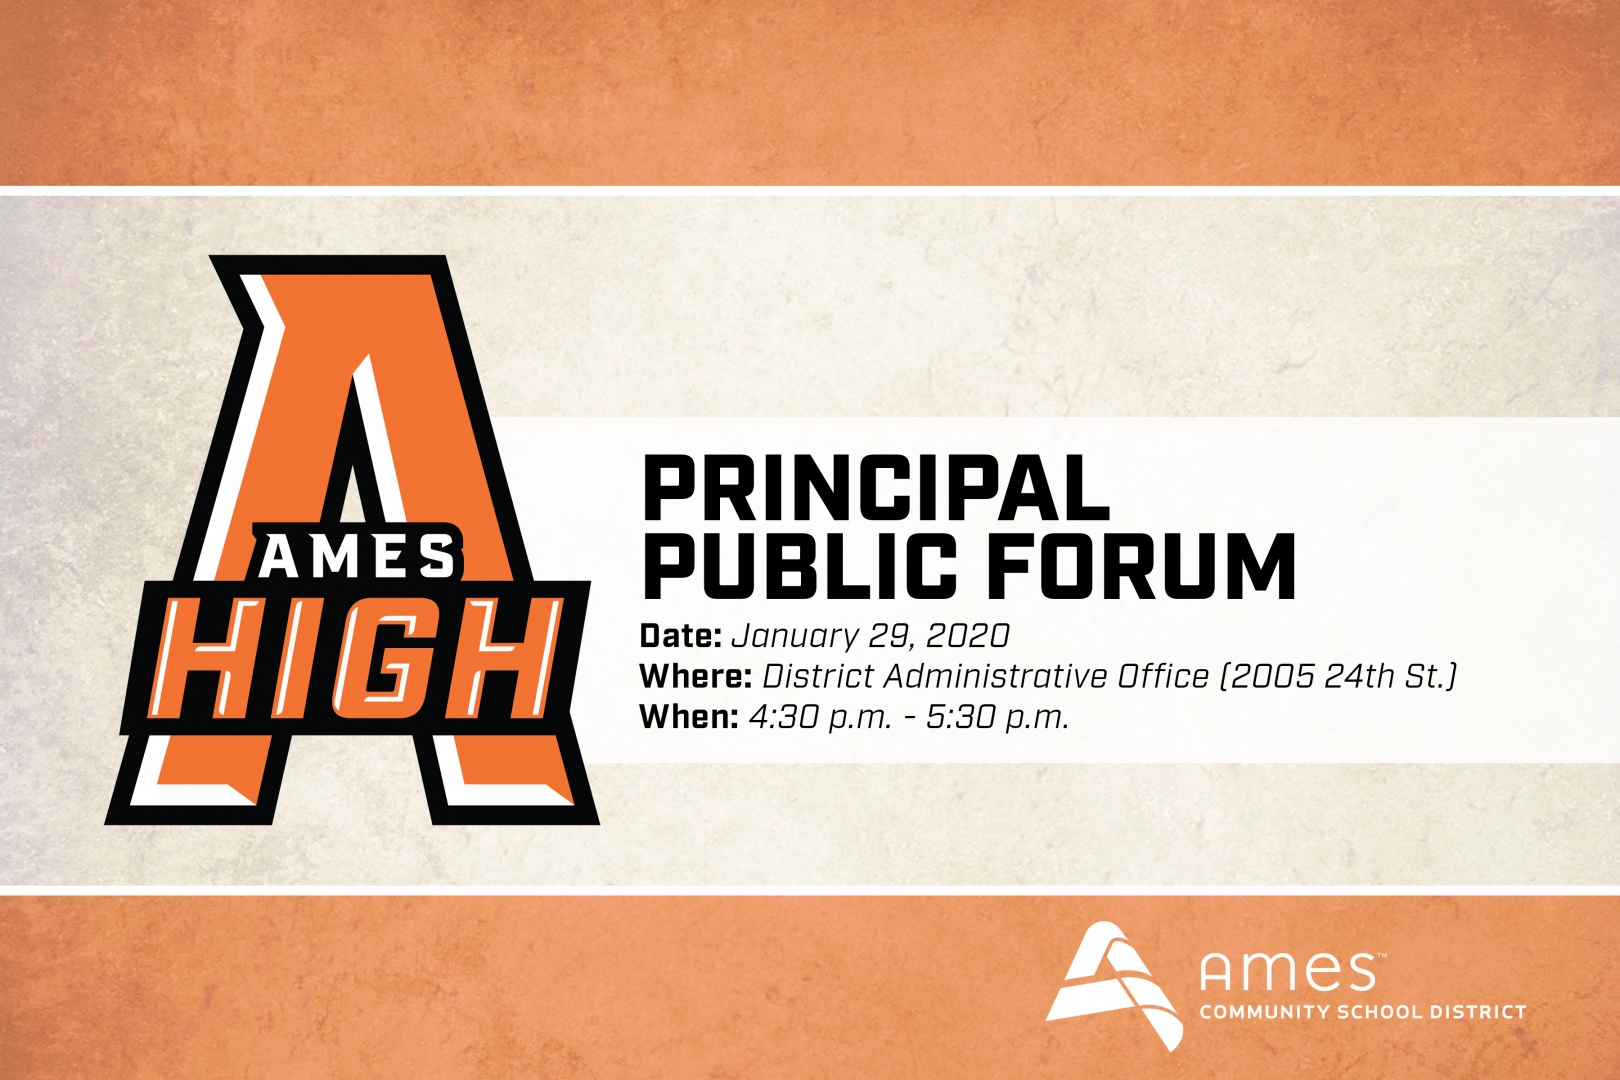 01 Ames High Principal Public Forum